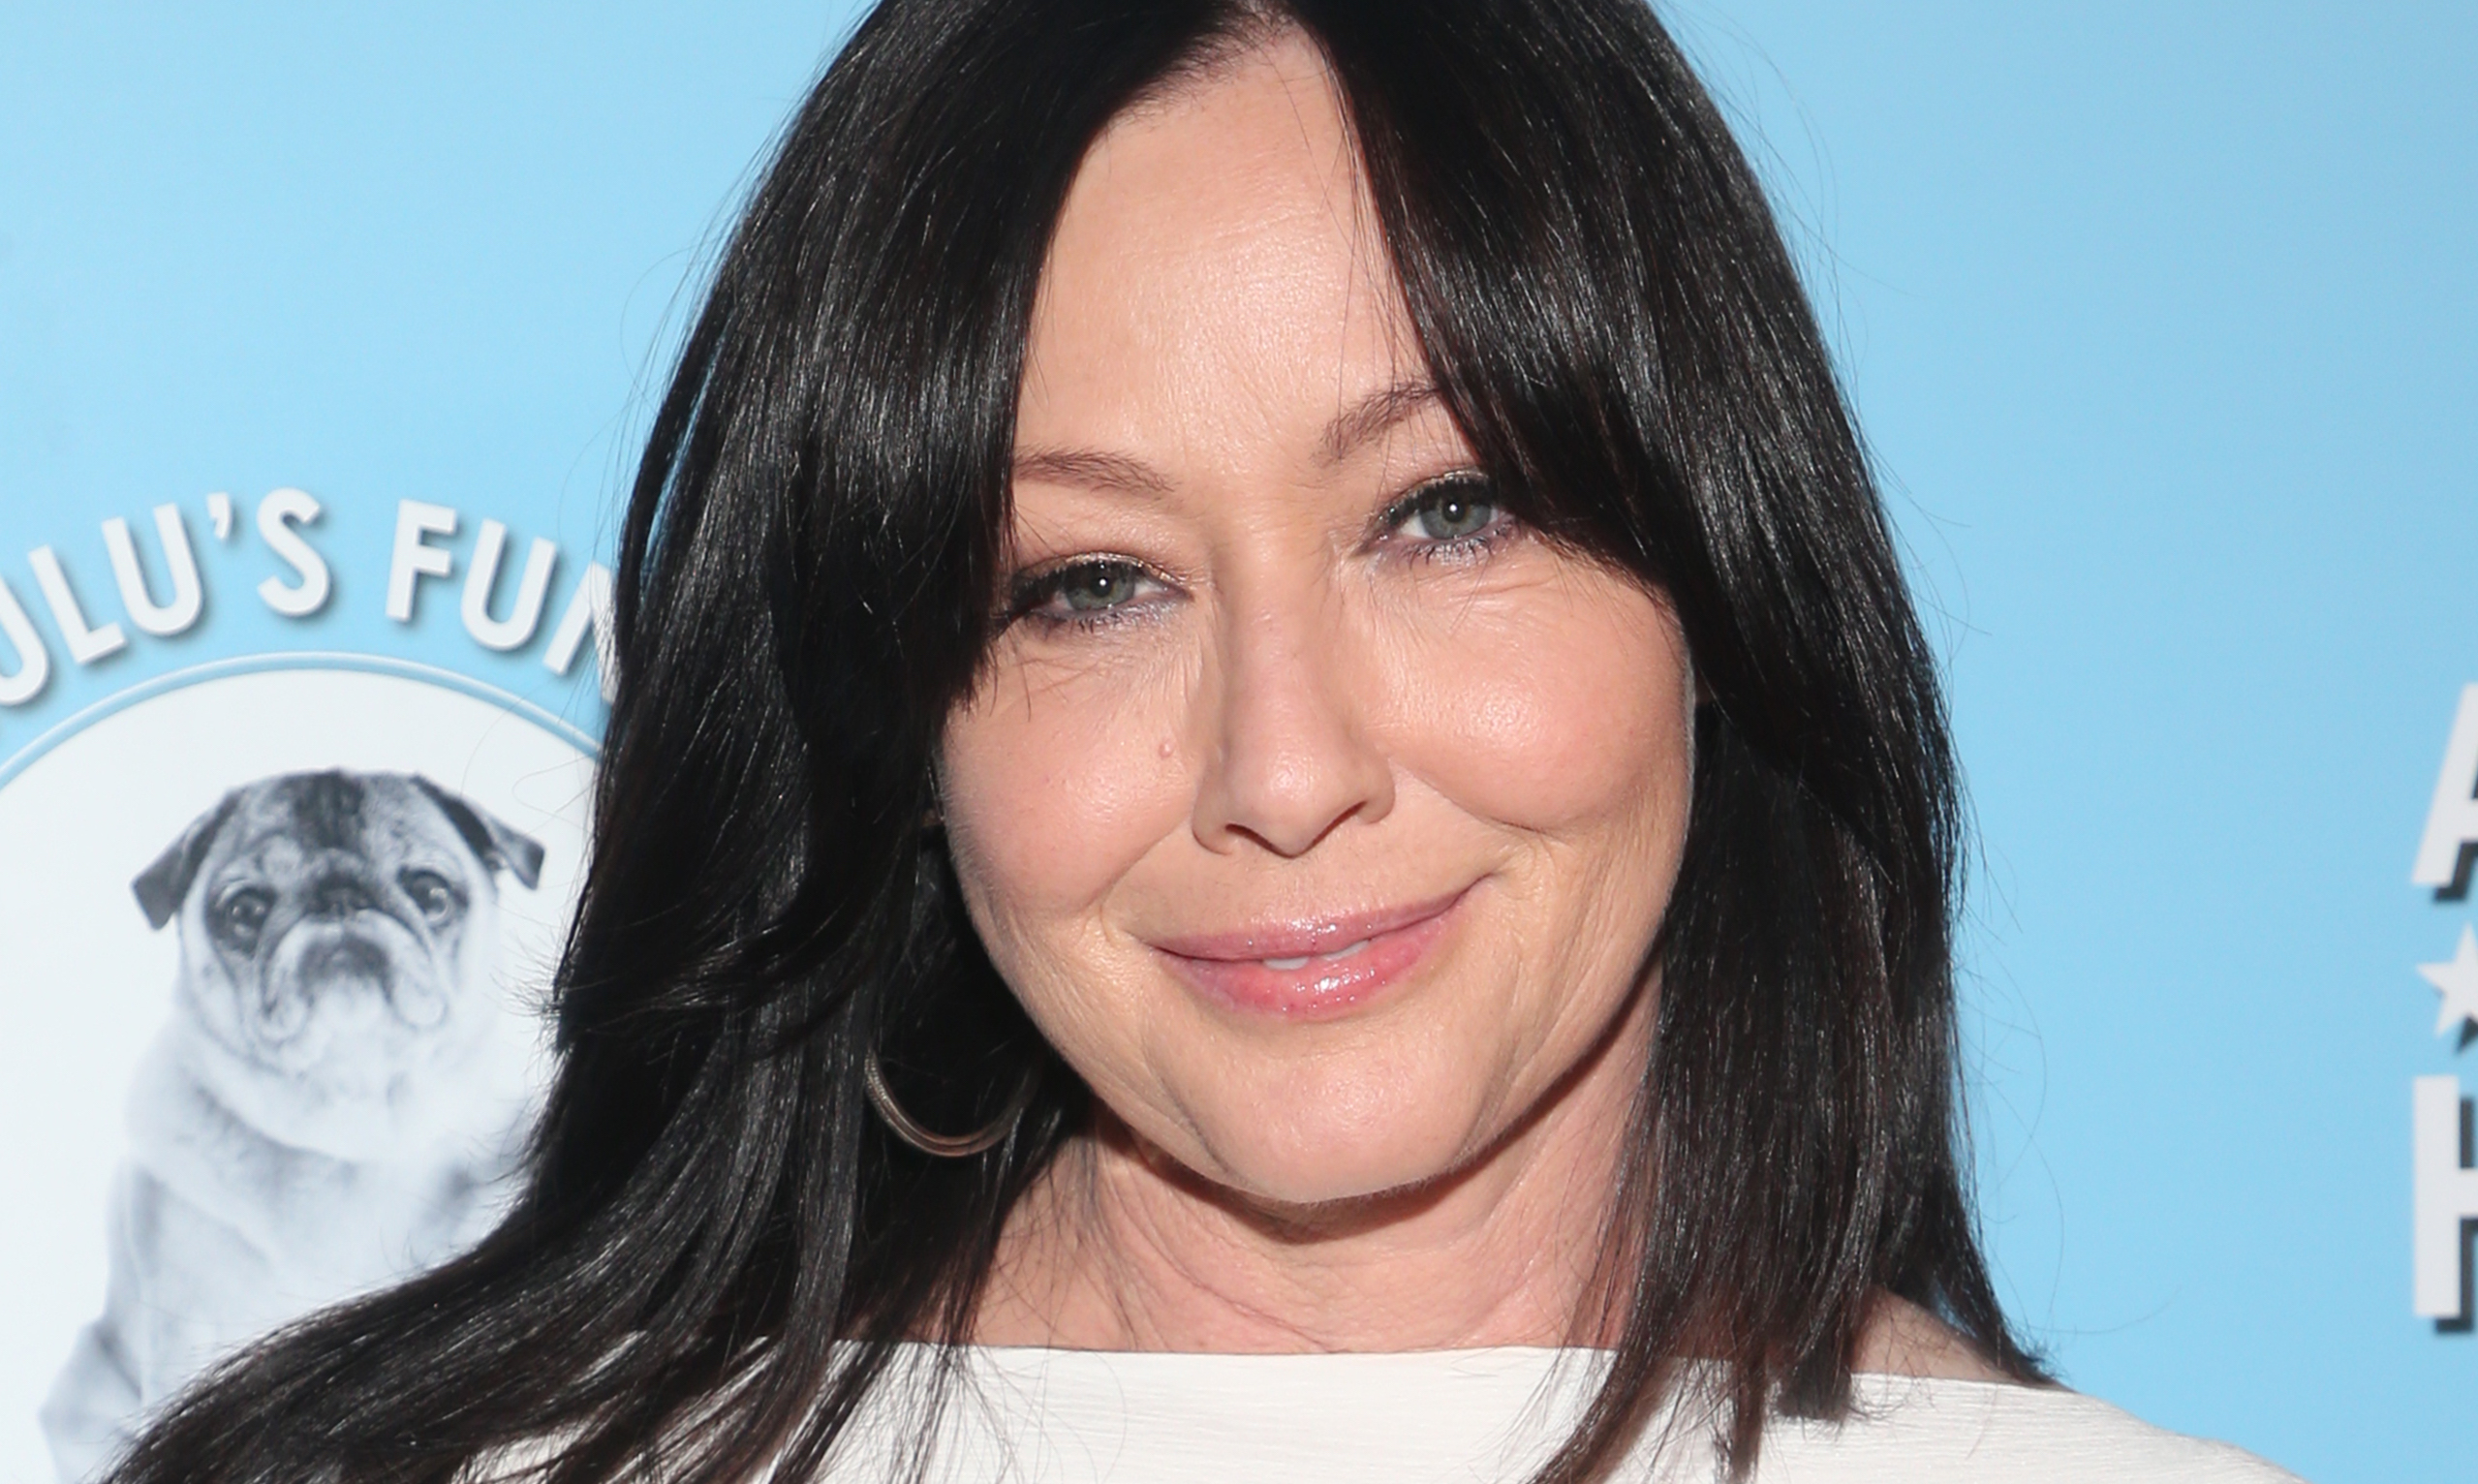 Shannen Doherty Reveals She Has Stage Four Cancer